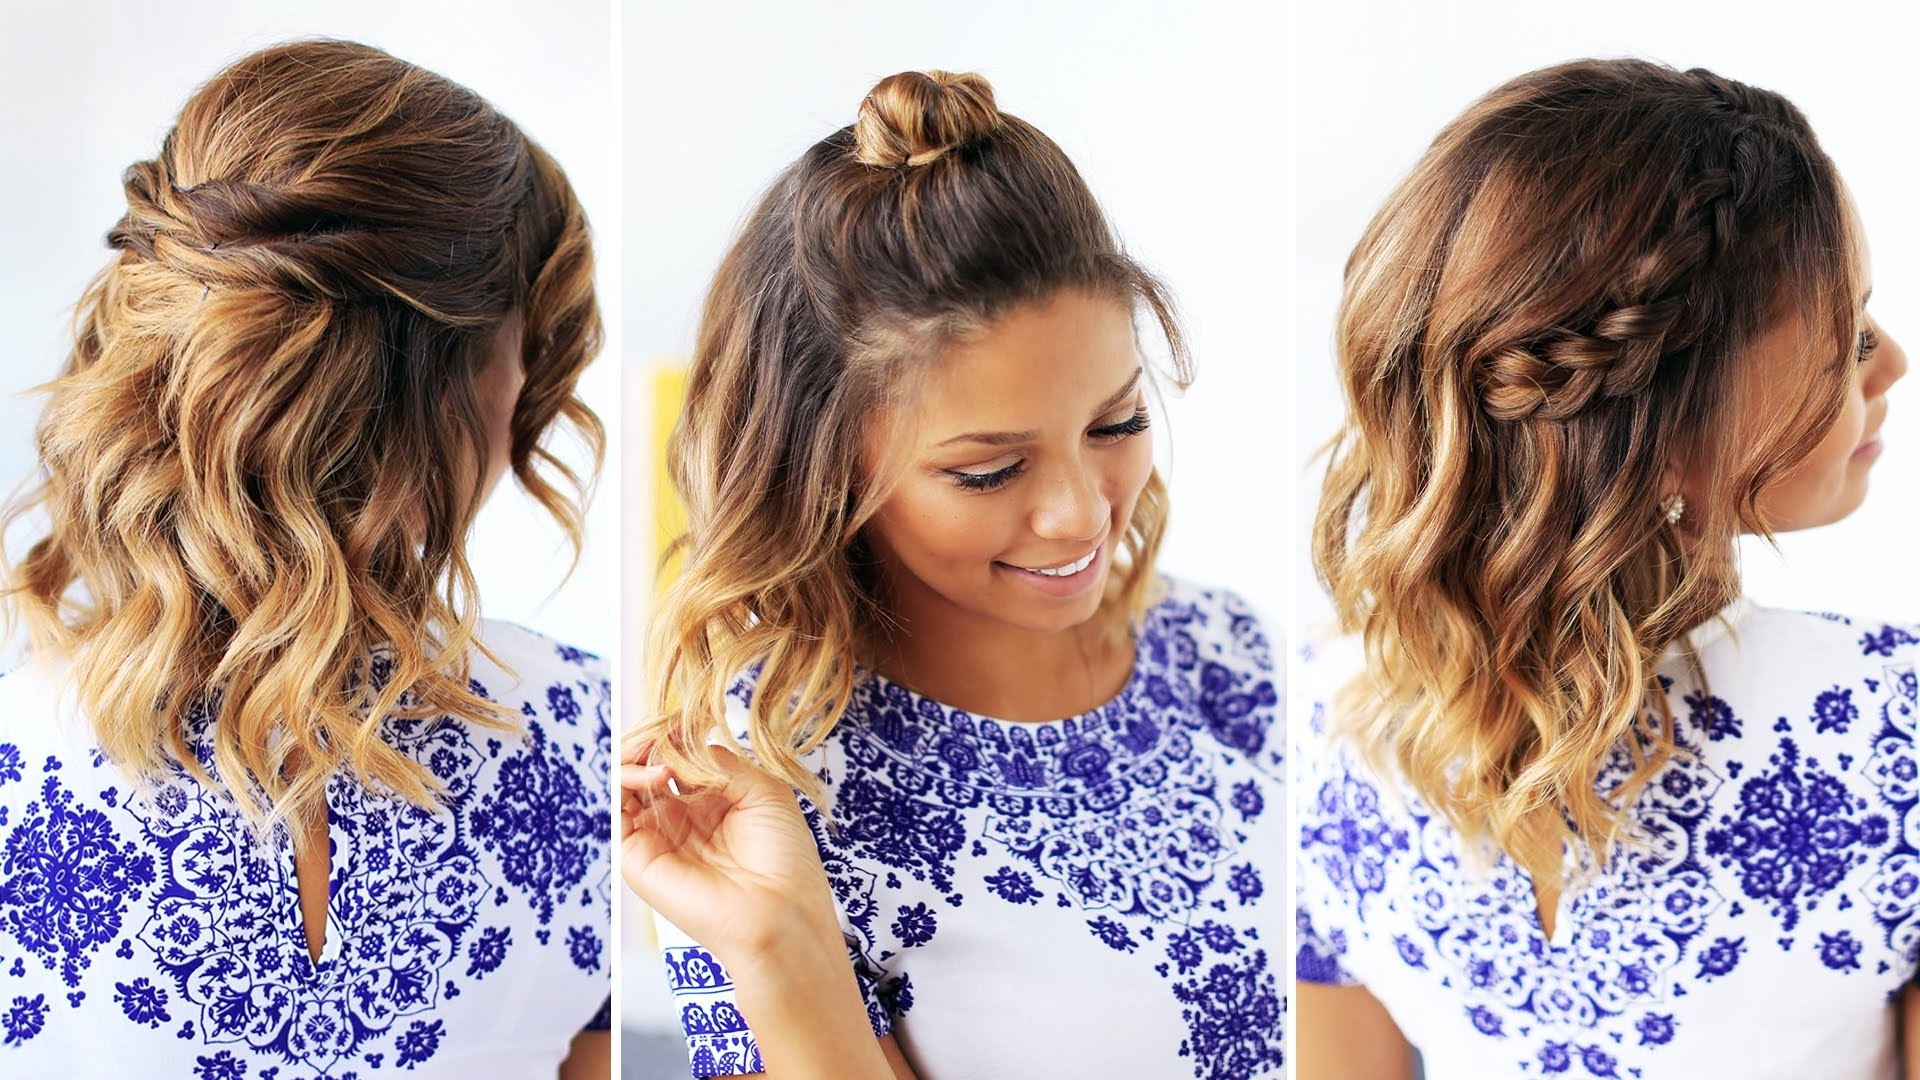 Easy Cute Hairstyles For Short Hair – Hairstyles Ideas With Regard To Cute Hairstyles With Short Hair (View 5 of 25)